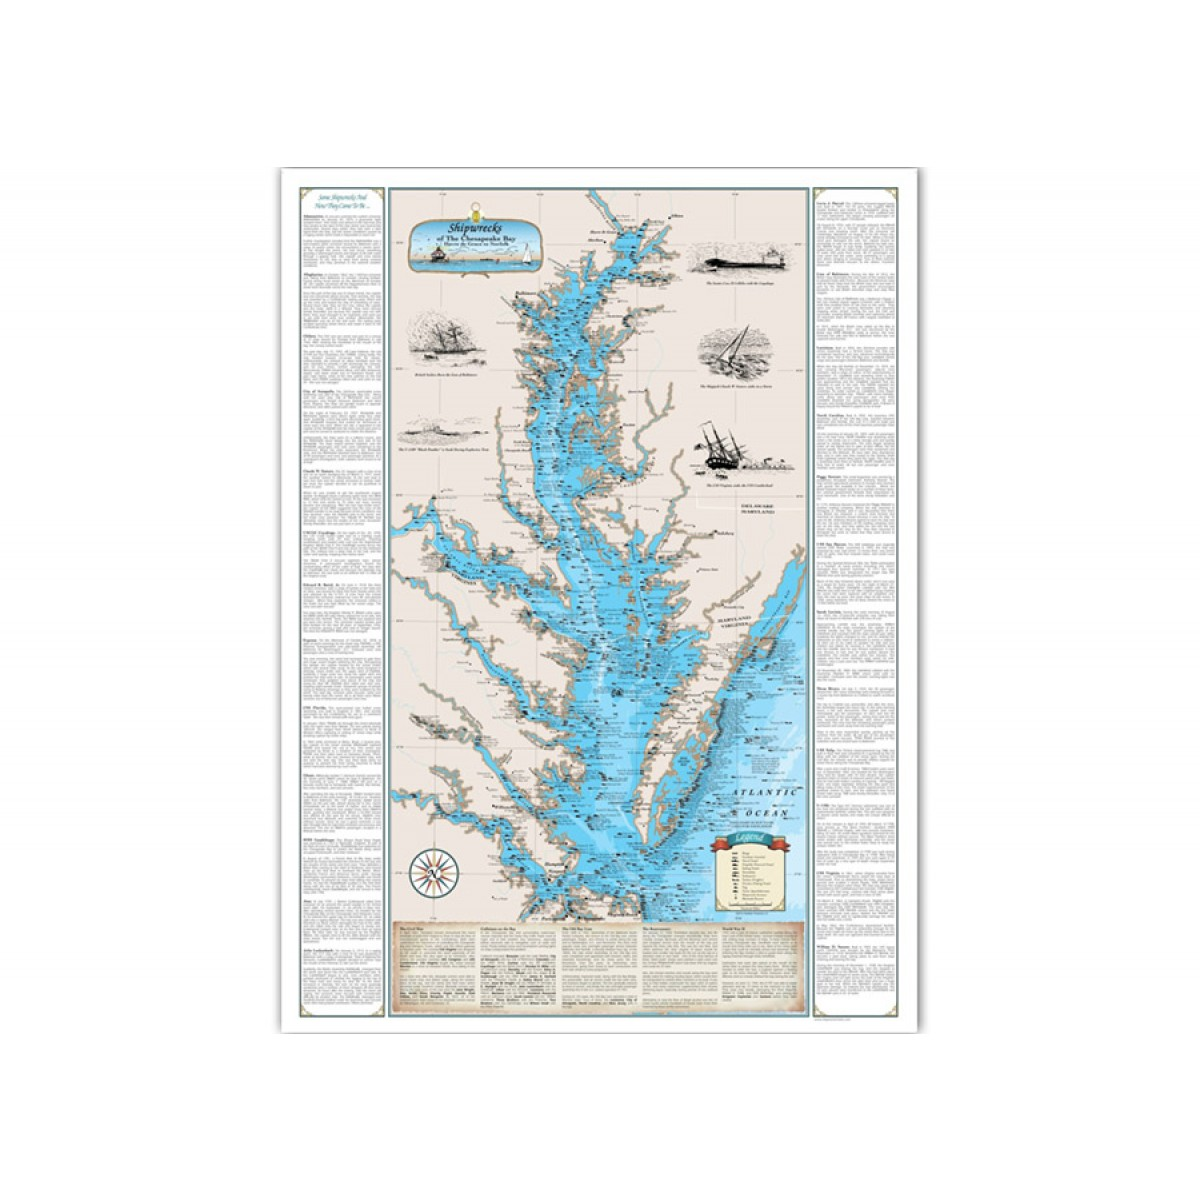 Chesapeake Bay On Map Of Usa.Shipwrecks Of Chesapeake Bay Map Havre De Grace Norfolk Kellyco